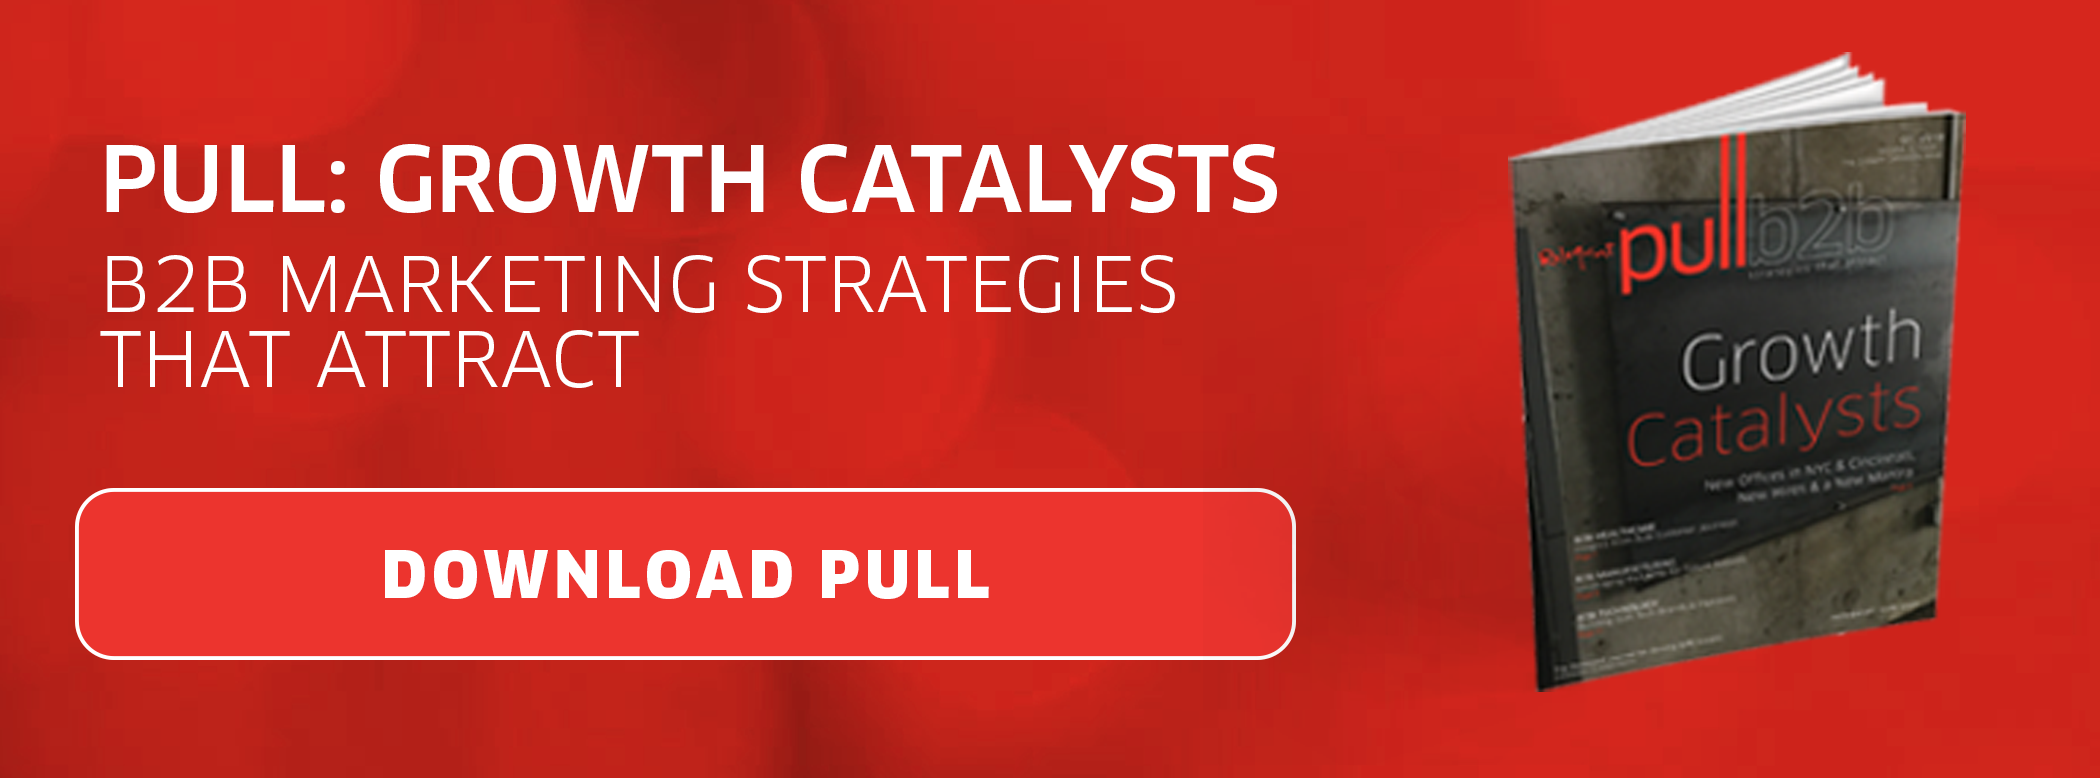 pull-2018-q1-growth-catalysts